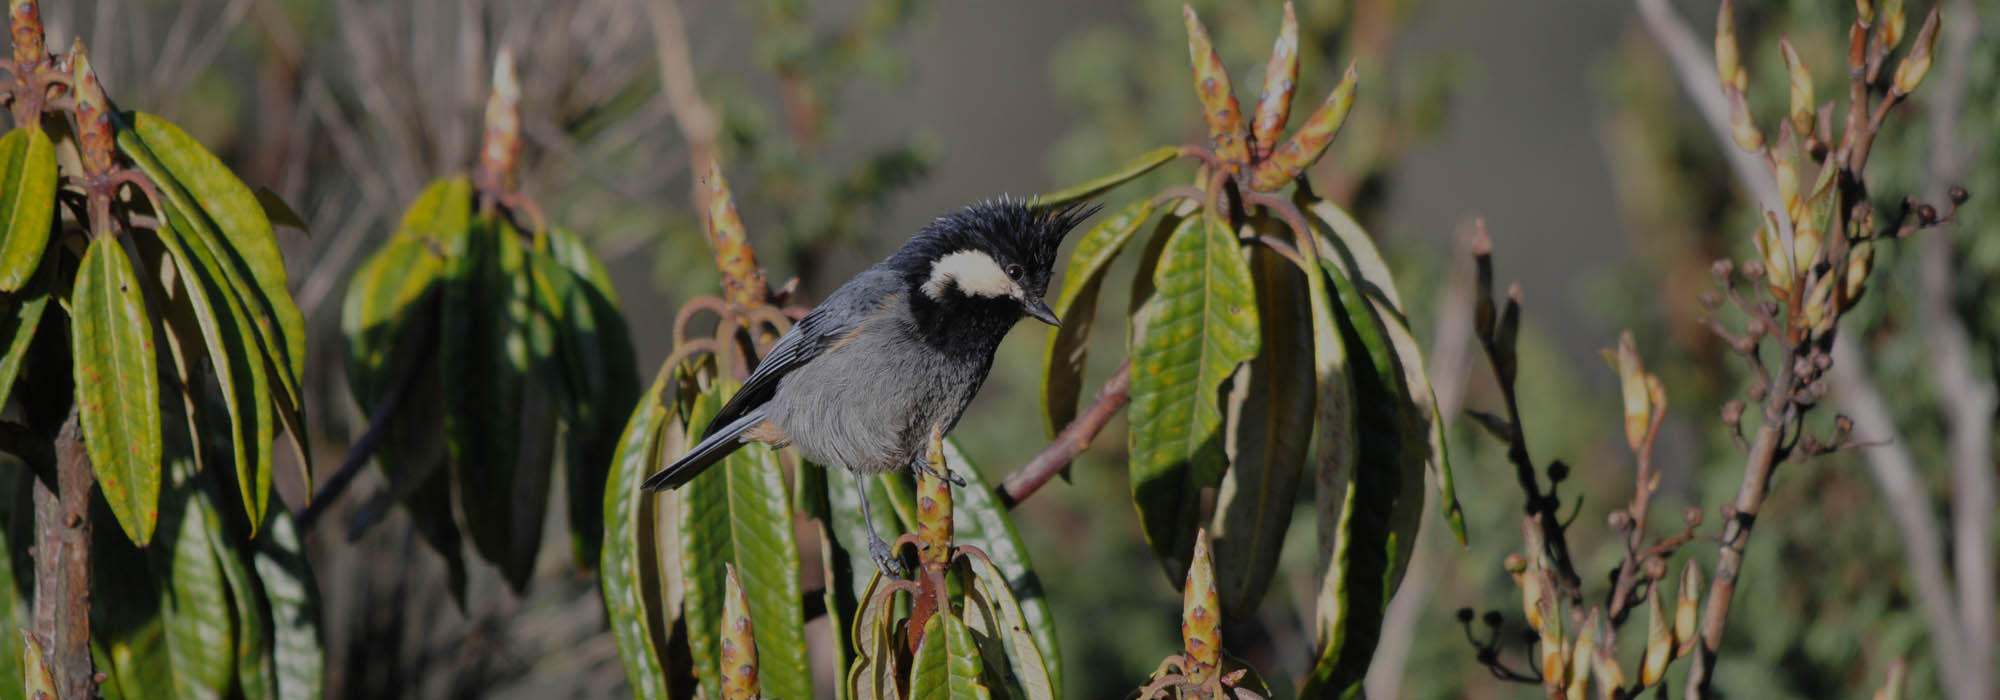 Bhutan Endangered Bird Watching